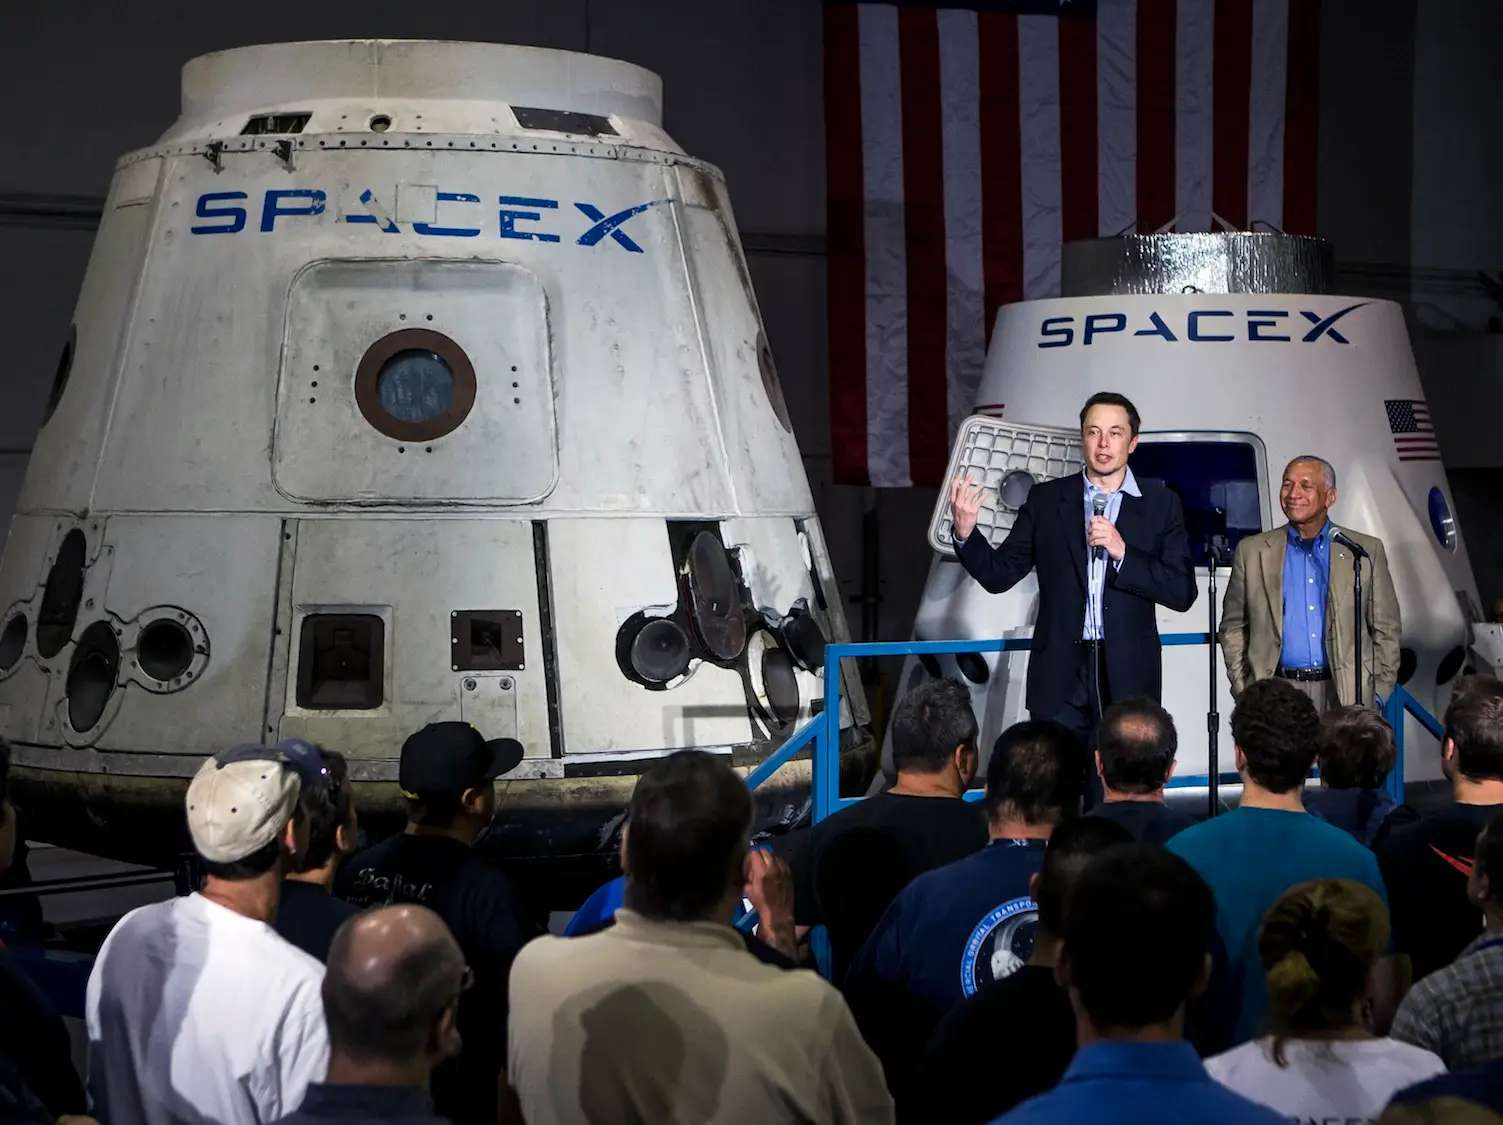 Before the sale of PayPal was complete, he founded one of the two companies that has made Musk so famous over the last few years: SpaceX.